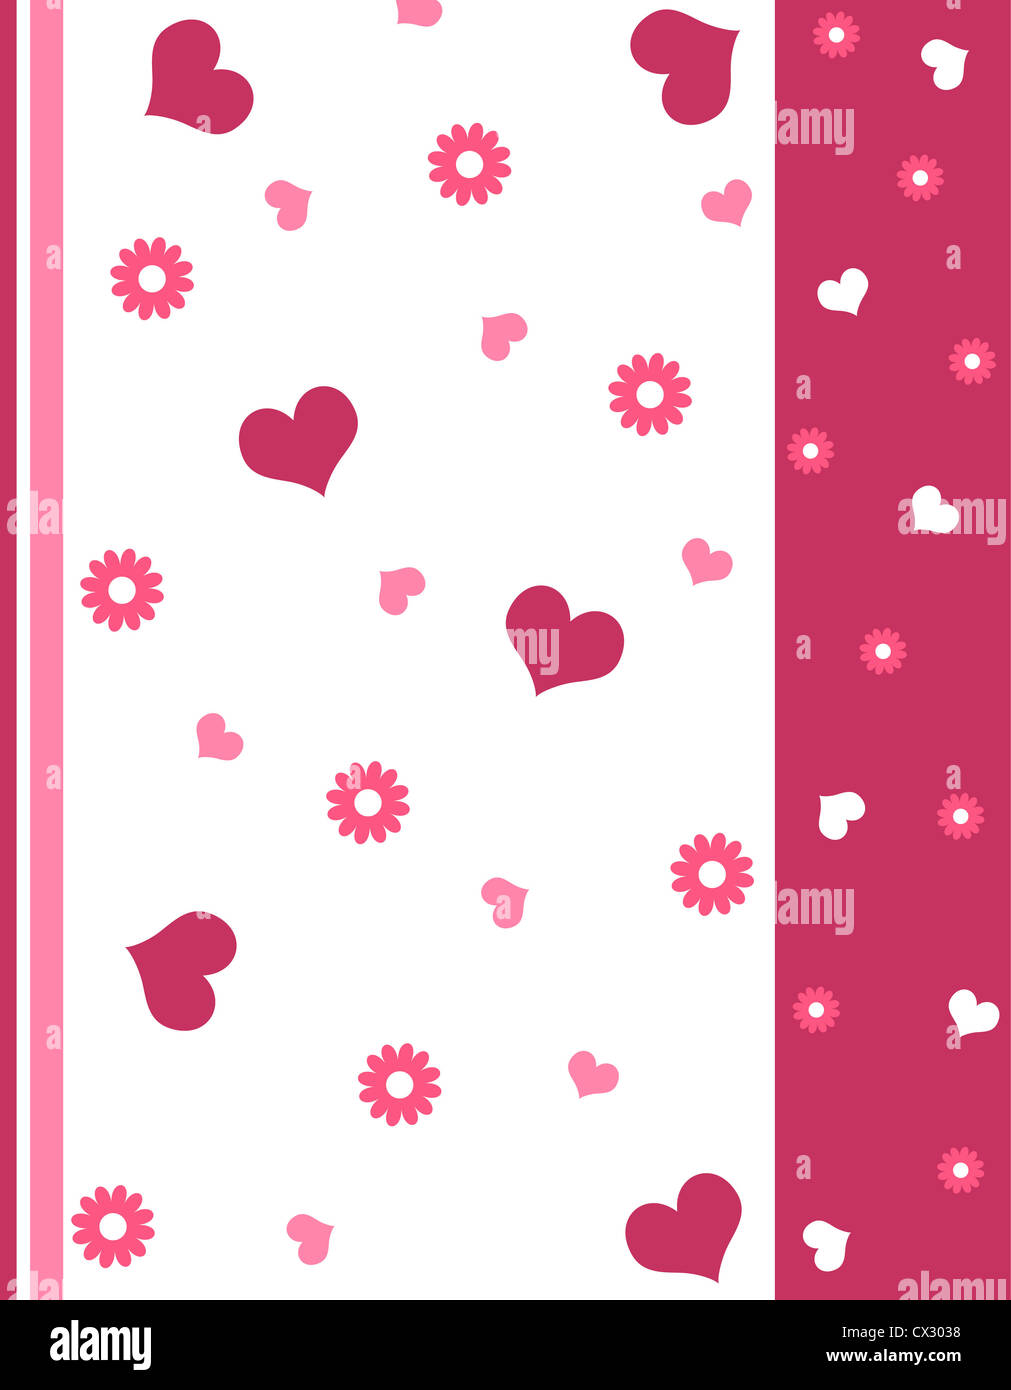 Hearts and floral design in pink Stock Photo